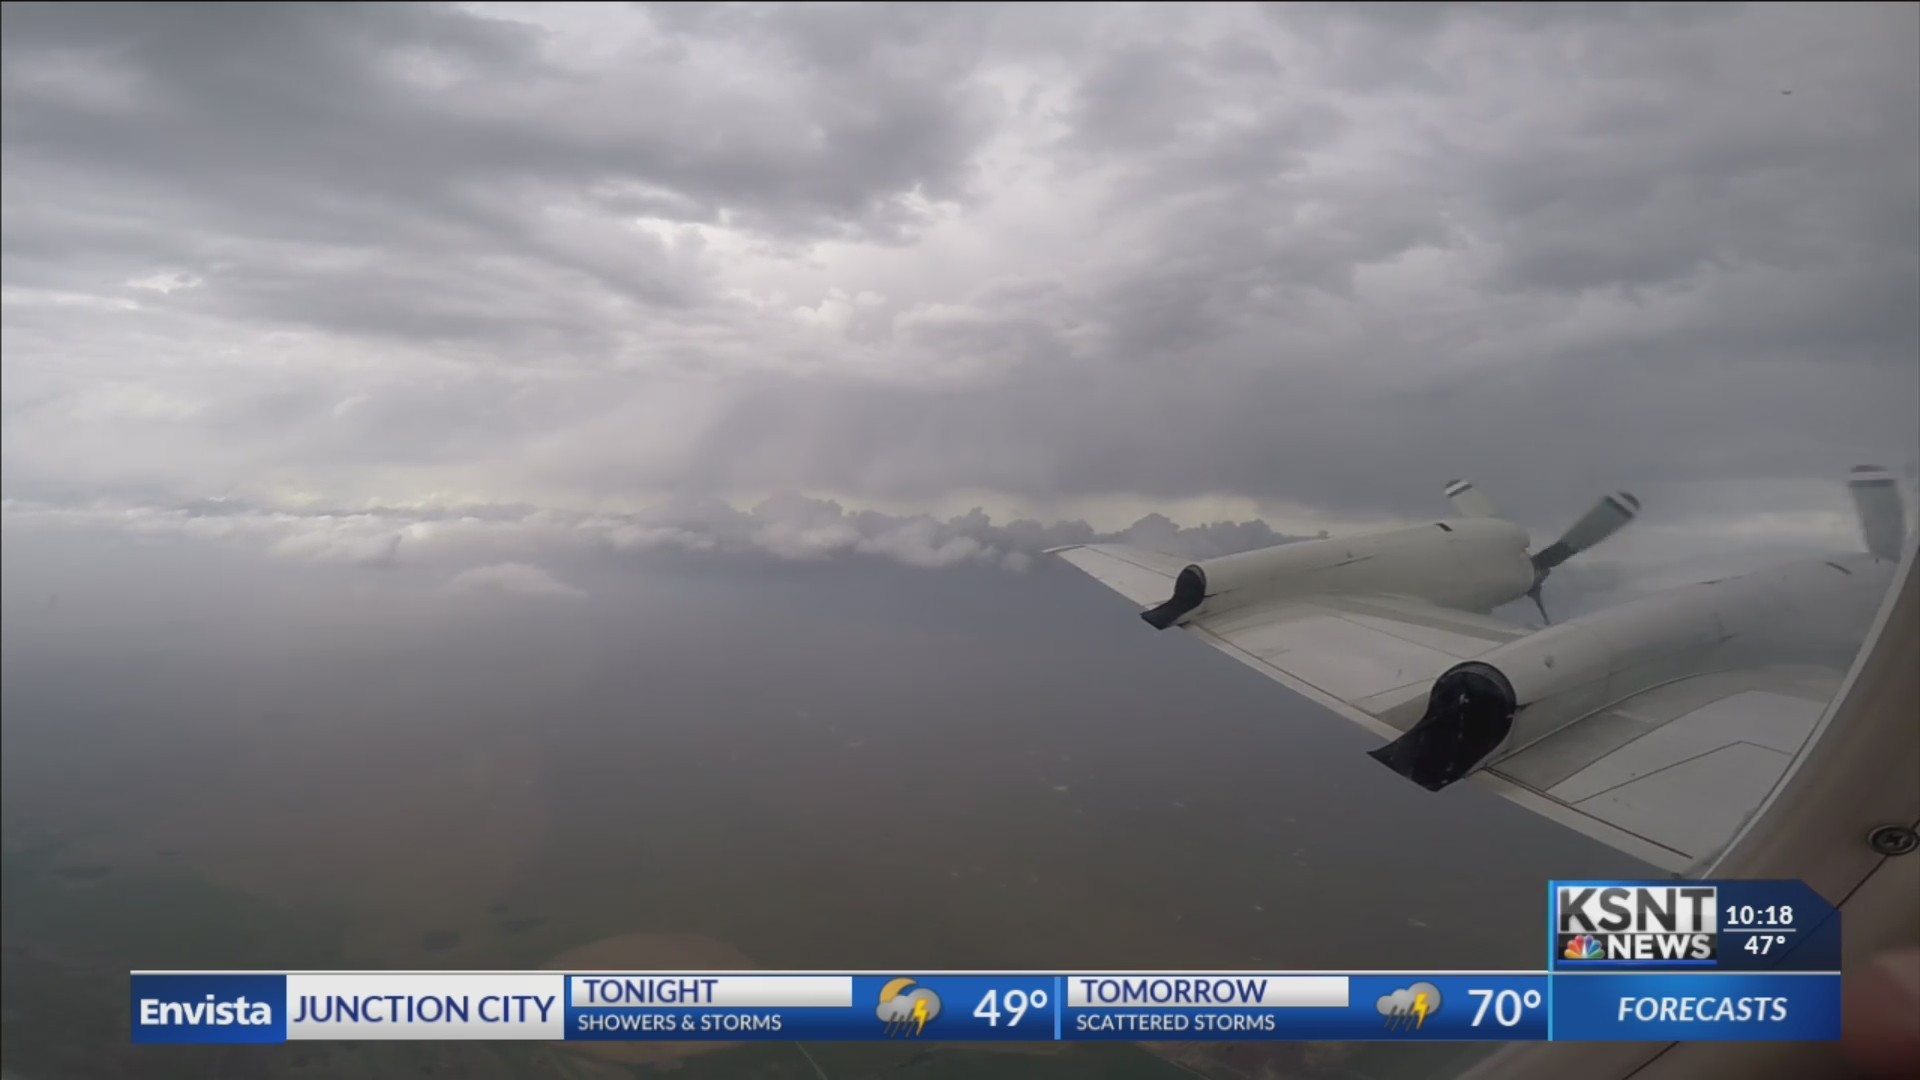 Chief Meteorologist Matt Miller takes you into the storm with the Hurricane Hunters